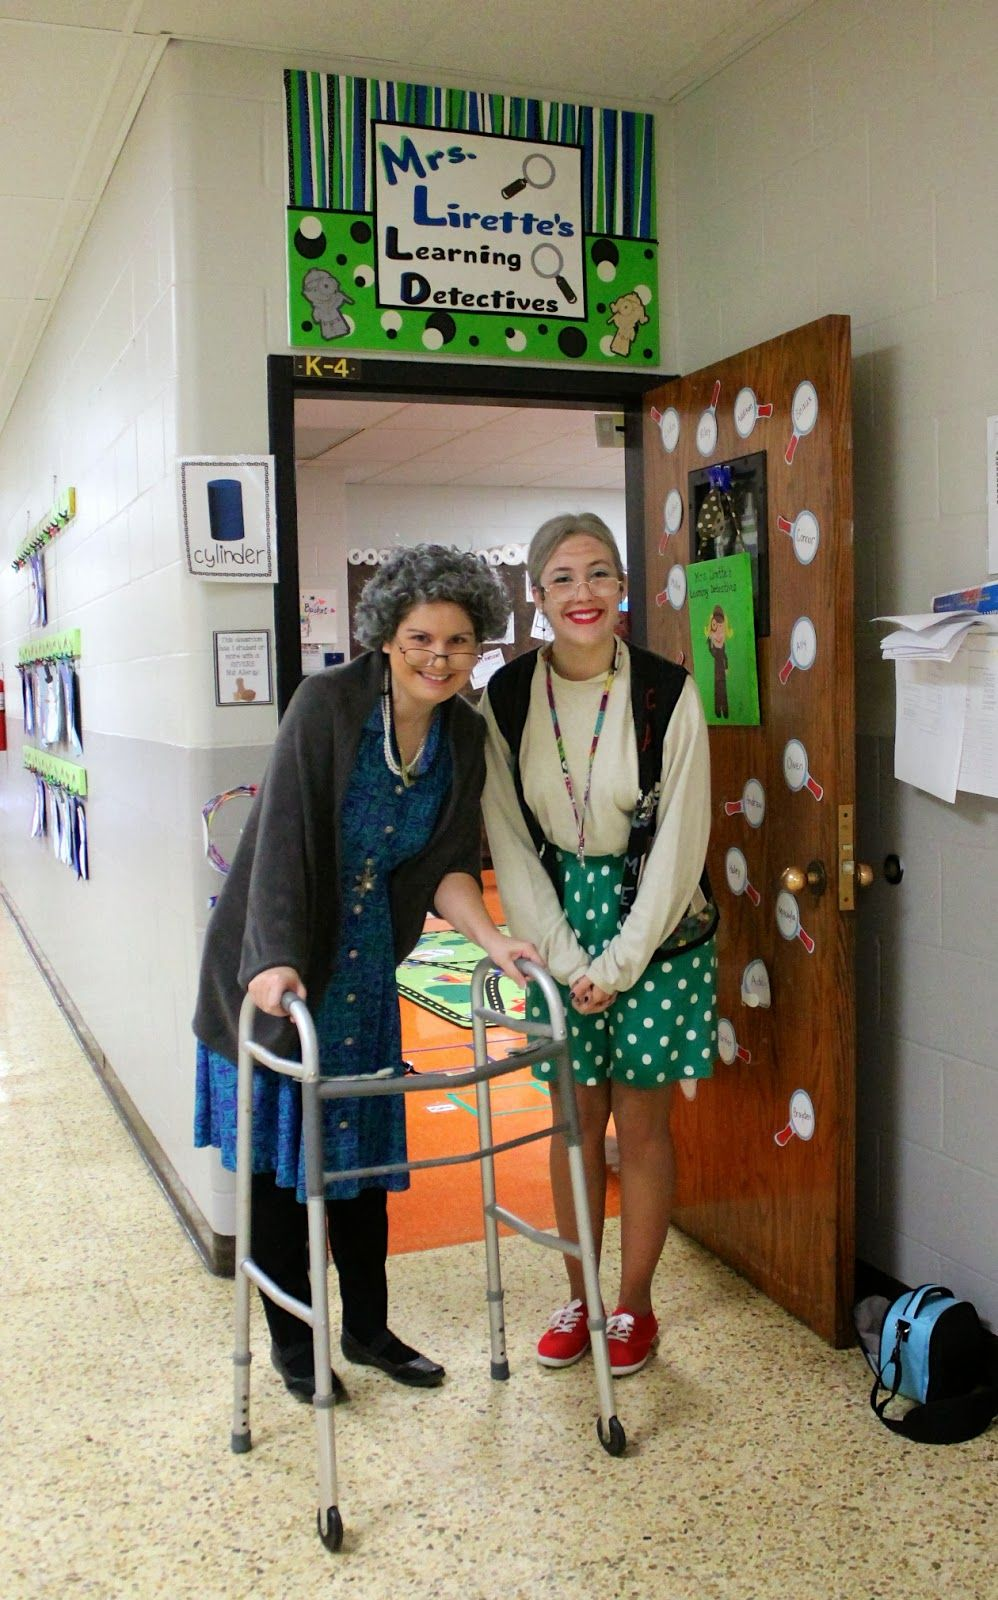 Hooray for our 100th Day! (Mrs. Lirette's Learning